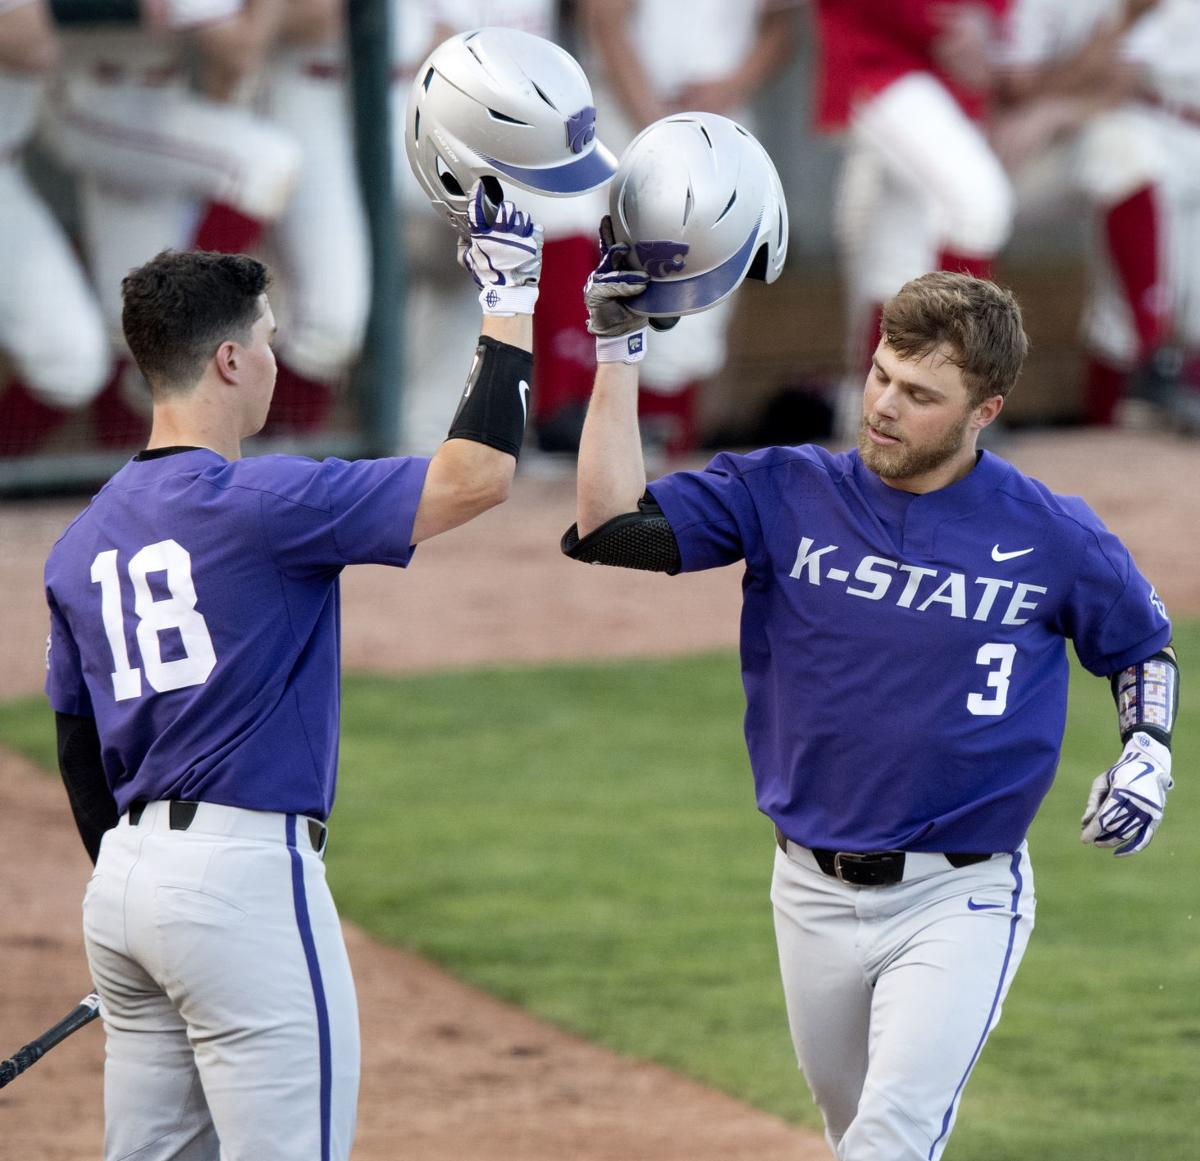 Kansas State vs. Nebraska, 4.16